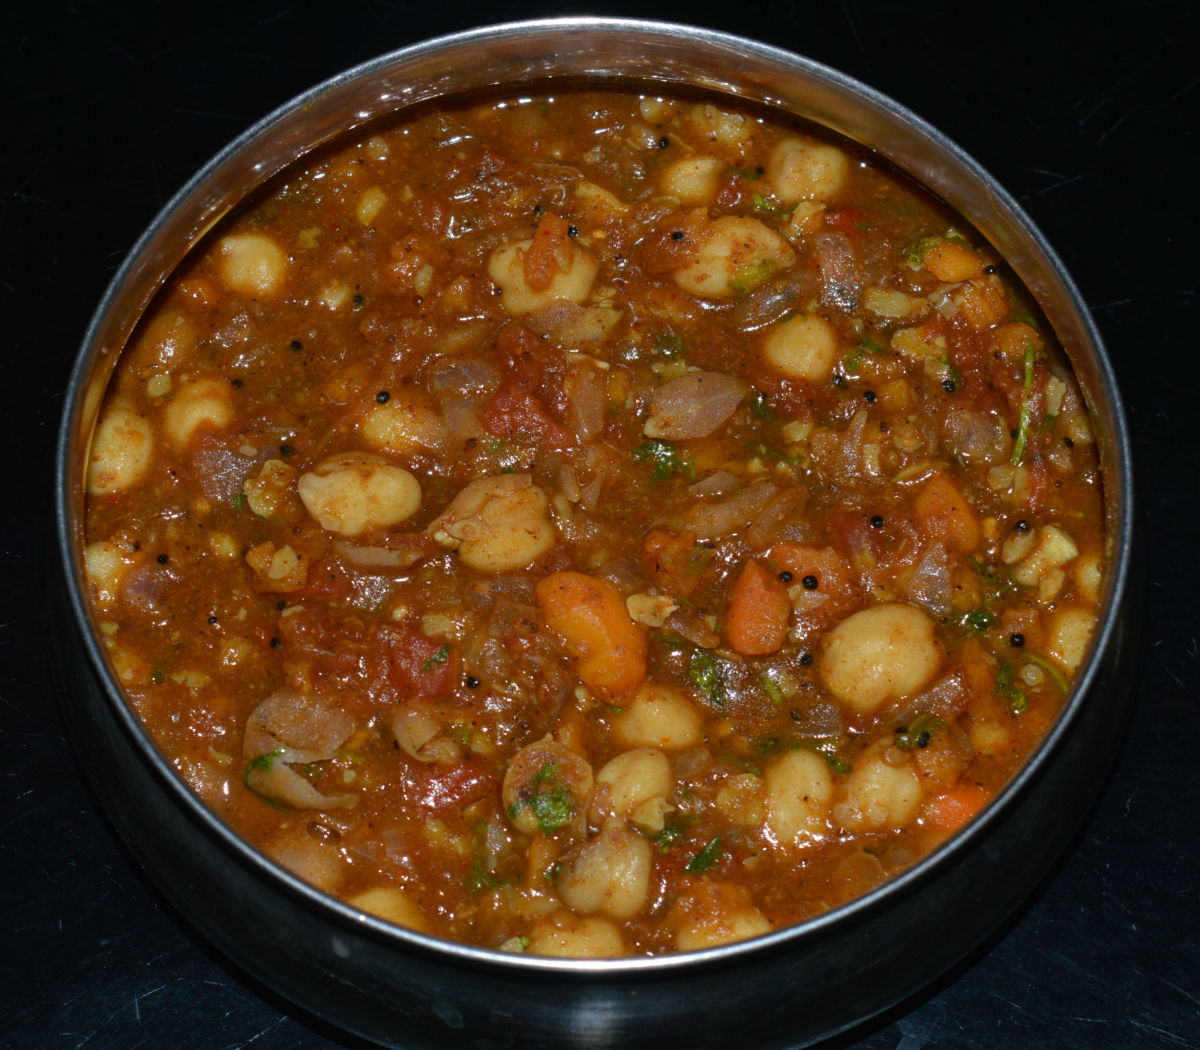 The chickpea curry (chole masala) is ready to serve!